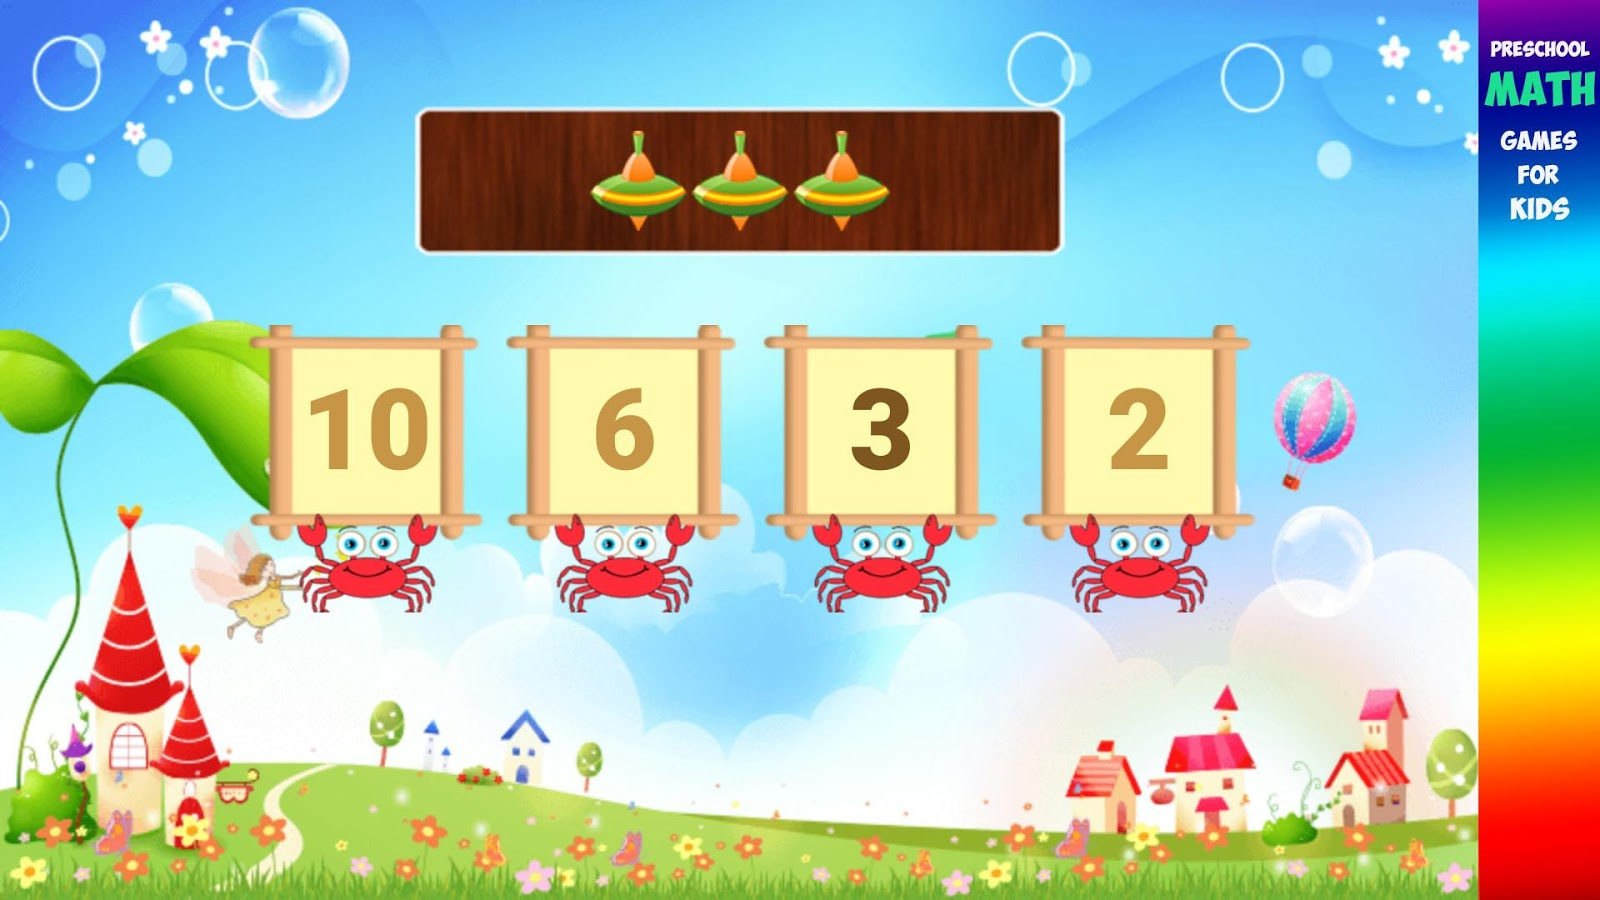 Amazing Preschool Math Games For Kids Android Apps On Google Play Easy Diy Christmas Decorations Tissureus